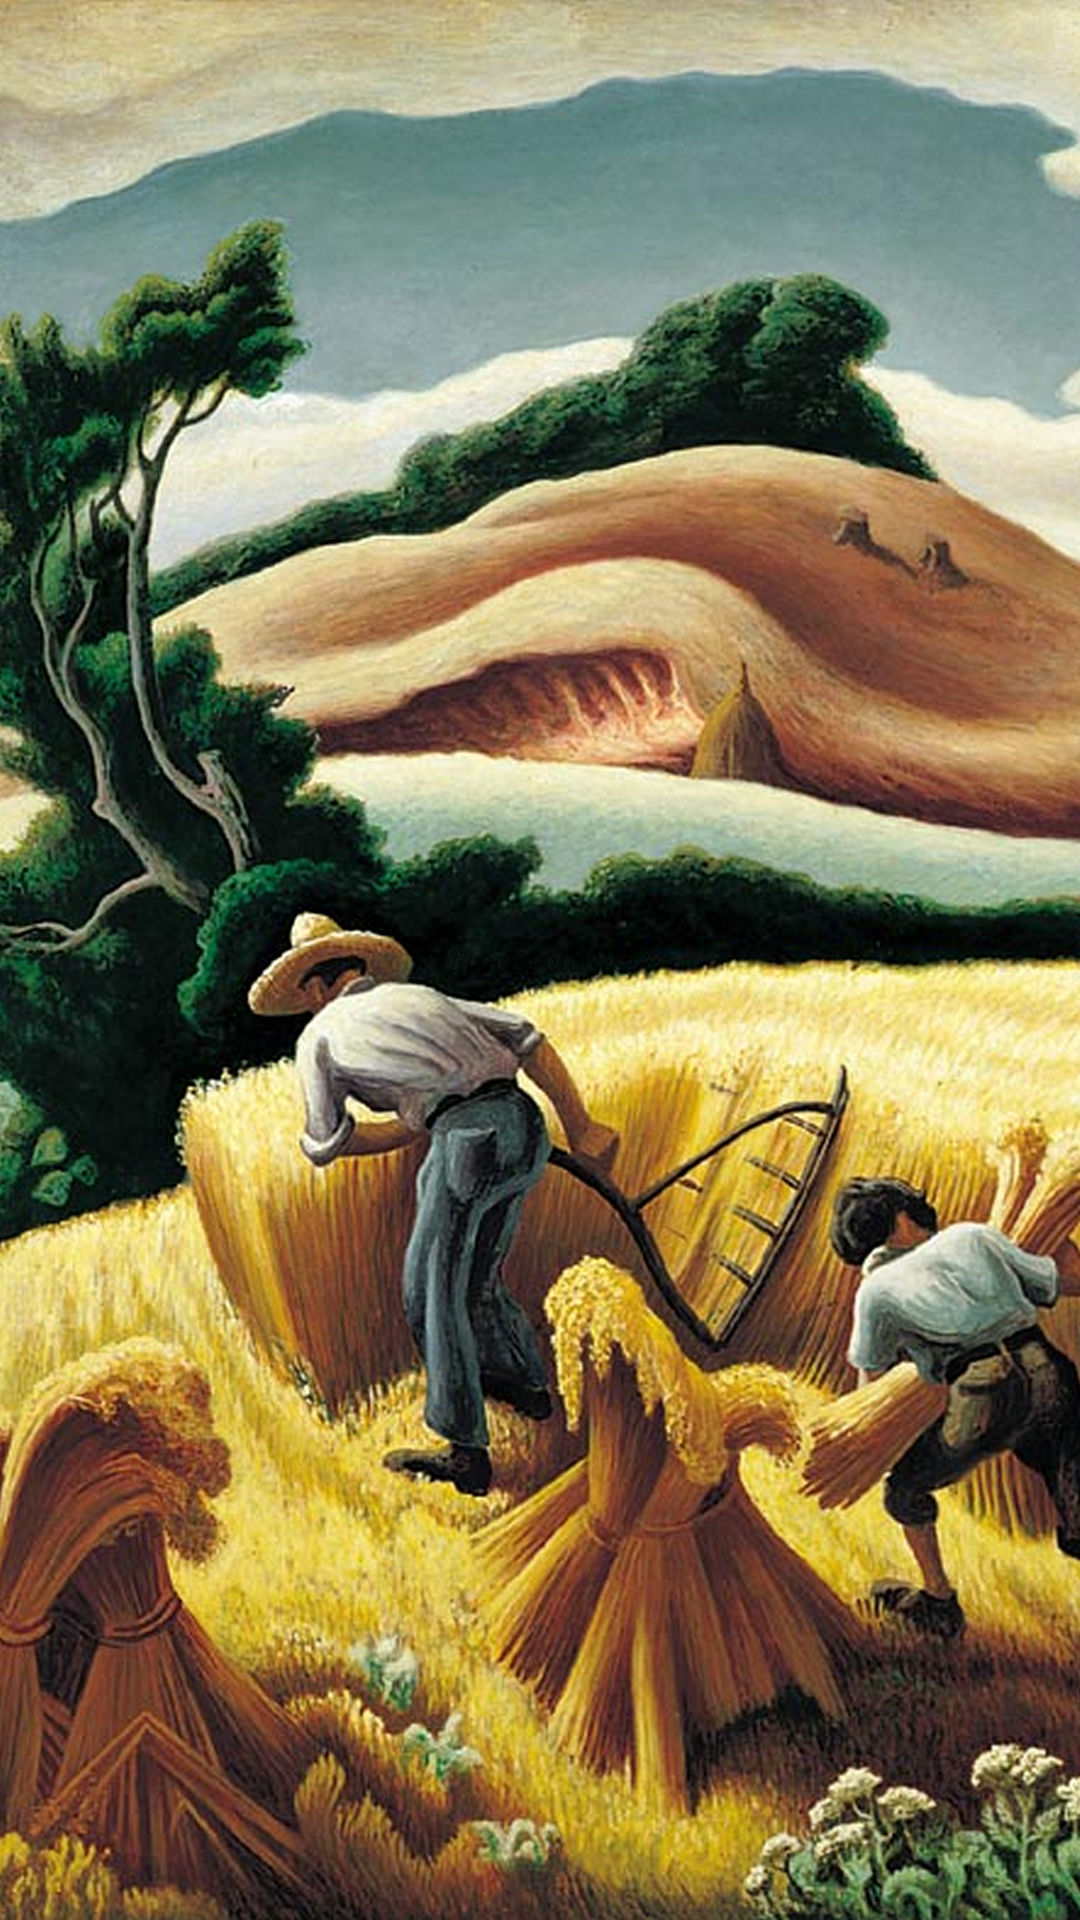 an analysis of cradling wheat a painting by thomas hart benton This statue of thomas hart benton was given to the national statuary hall collection by missouri in 1899 his family migrated to tennessee, where his father died as a young man, benton was left in charge of considerable land holdings he established a law practice and served as a colonel in the.